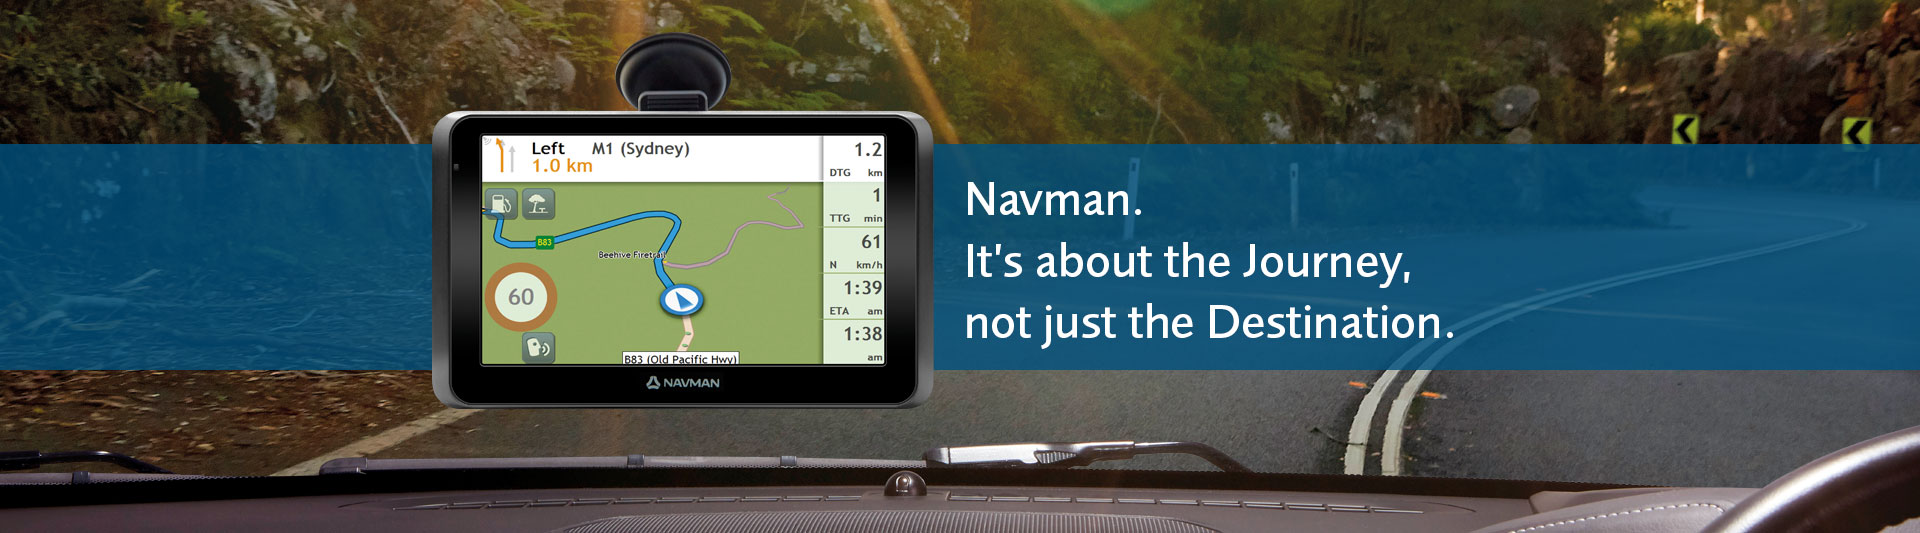 Gps Navigation Devices Dash Cams Maps Accessories More Comau Attachments Electricalwiringquestions 23638d1153994657diy Mobile Homepage Banner